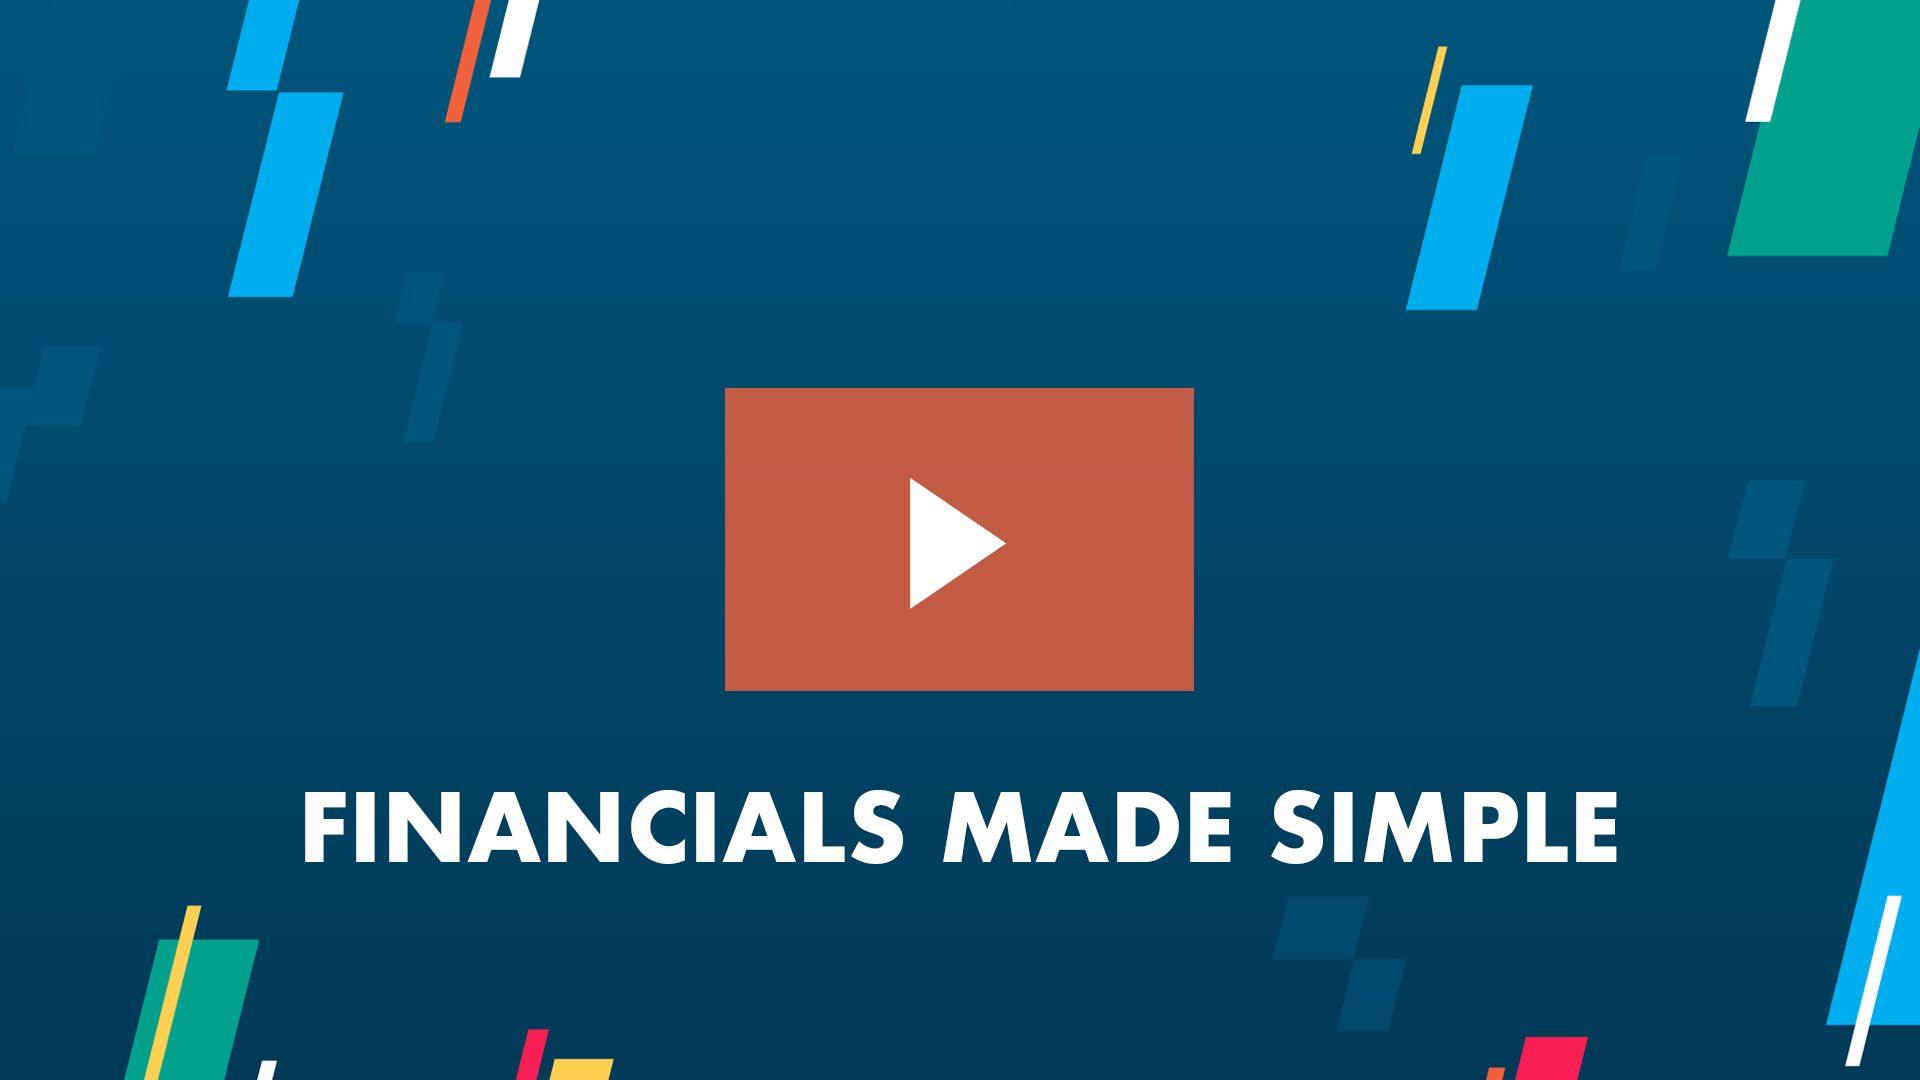 Financials made simple